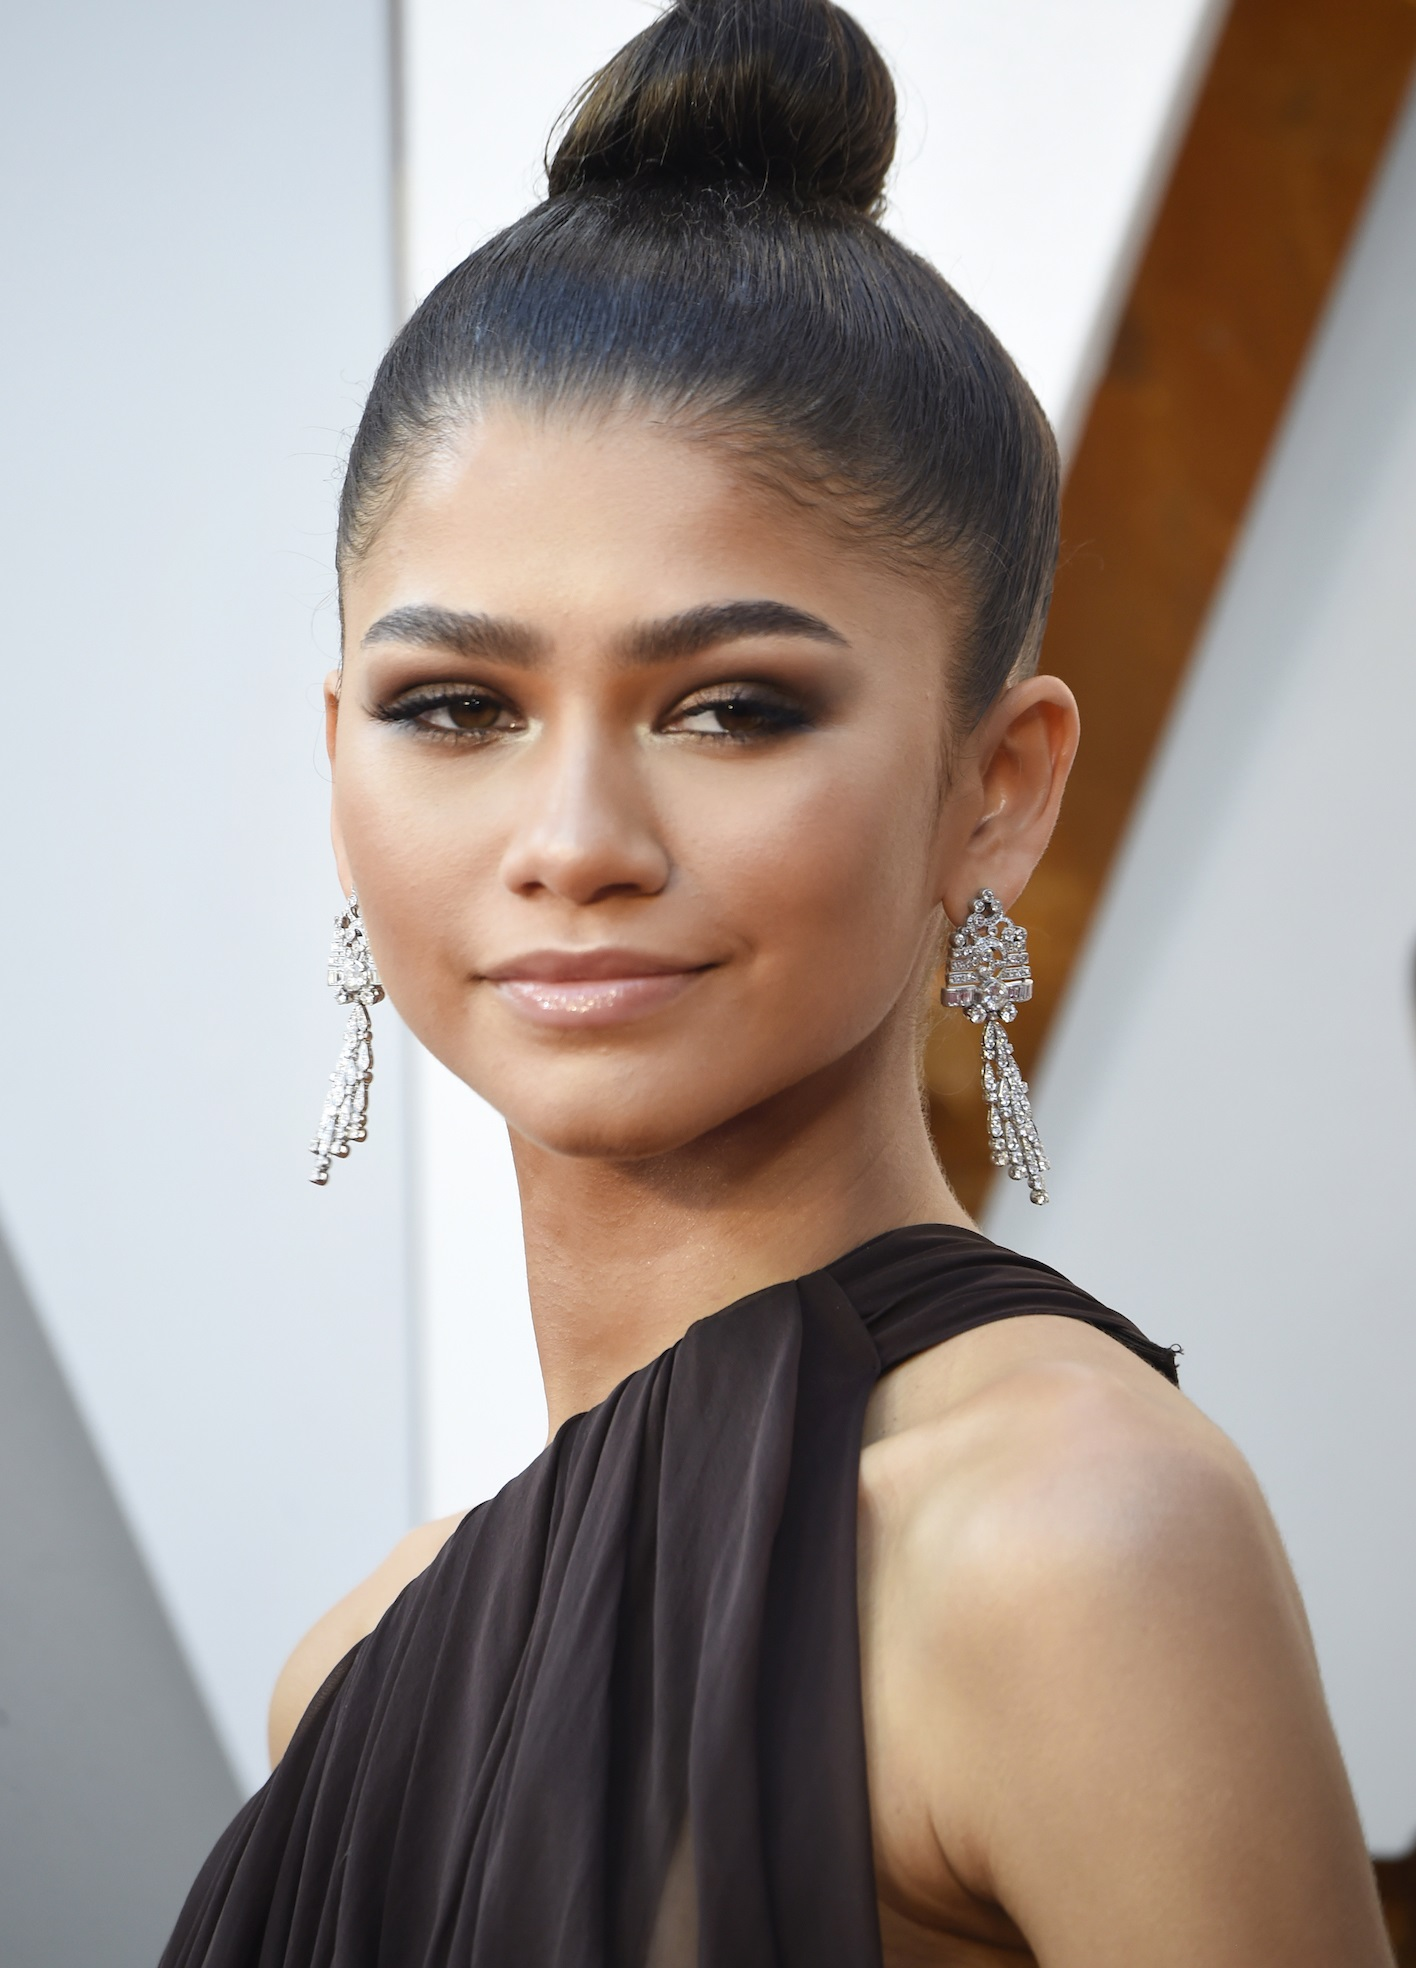 Images Zendaya Coleman naked (49 foto and video), Pussy, Cleavage, Feet, legs 2020